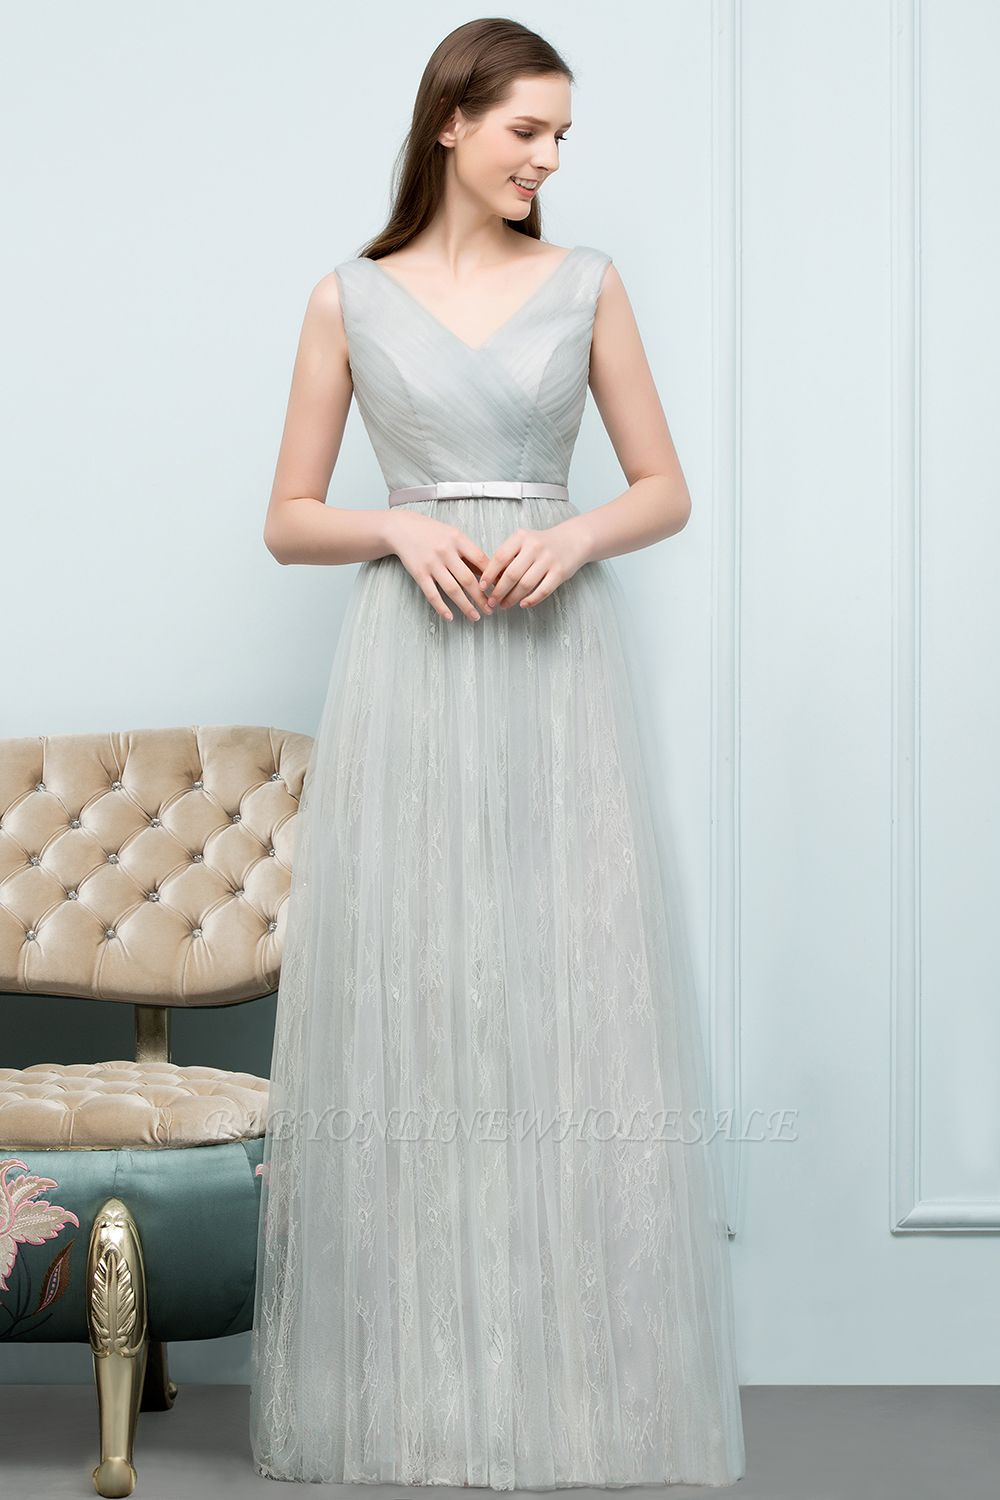 https://www.babyonlinewholesale.com/sophie-a-line-v-neck-floor-length-lace-bridesmaid-dresses-with-sash-g701?cate_2=30